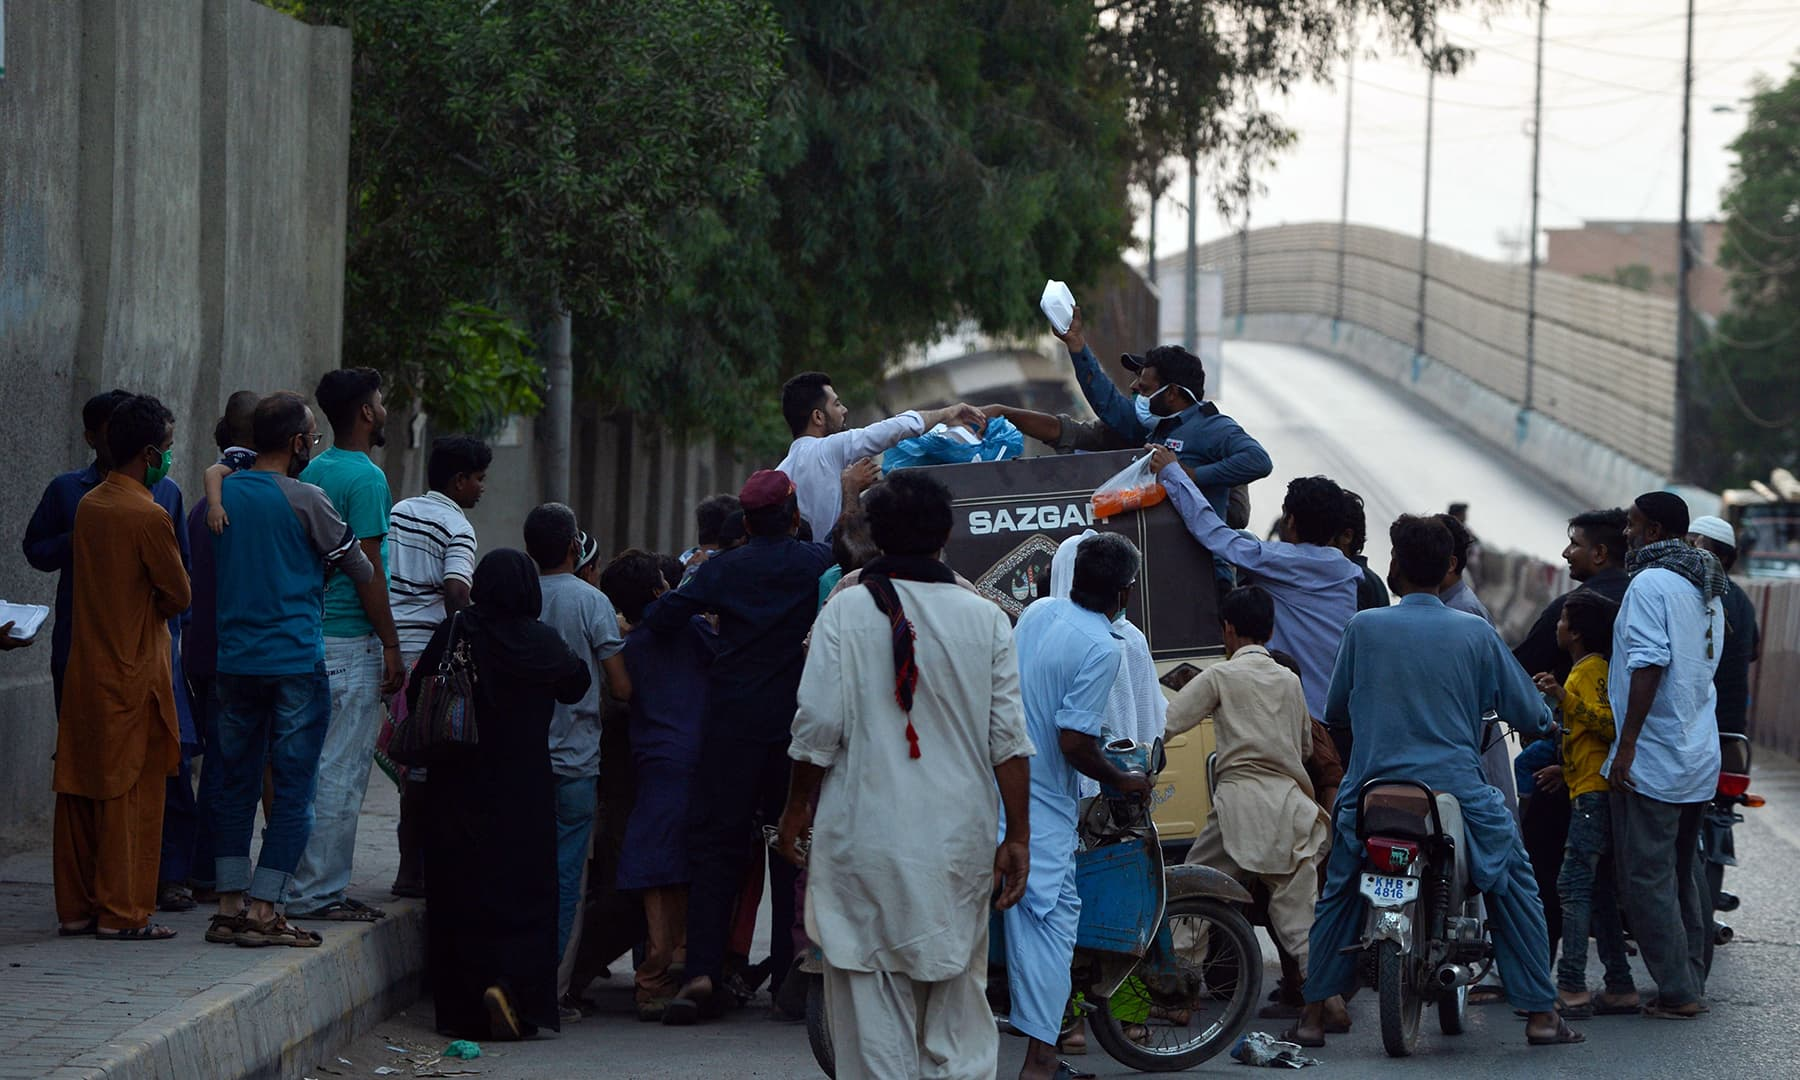 Men distribute food to people on the first day of Ramazan in Karachi. — AFP